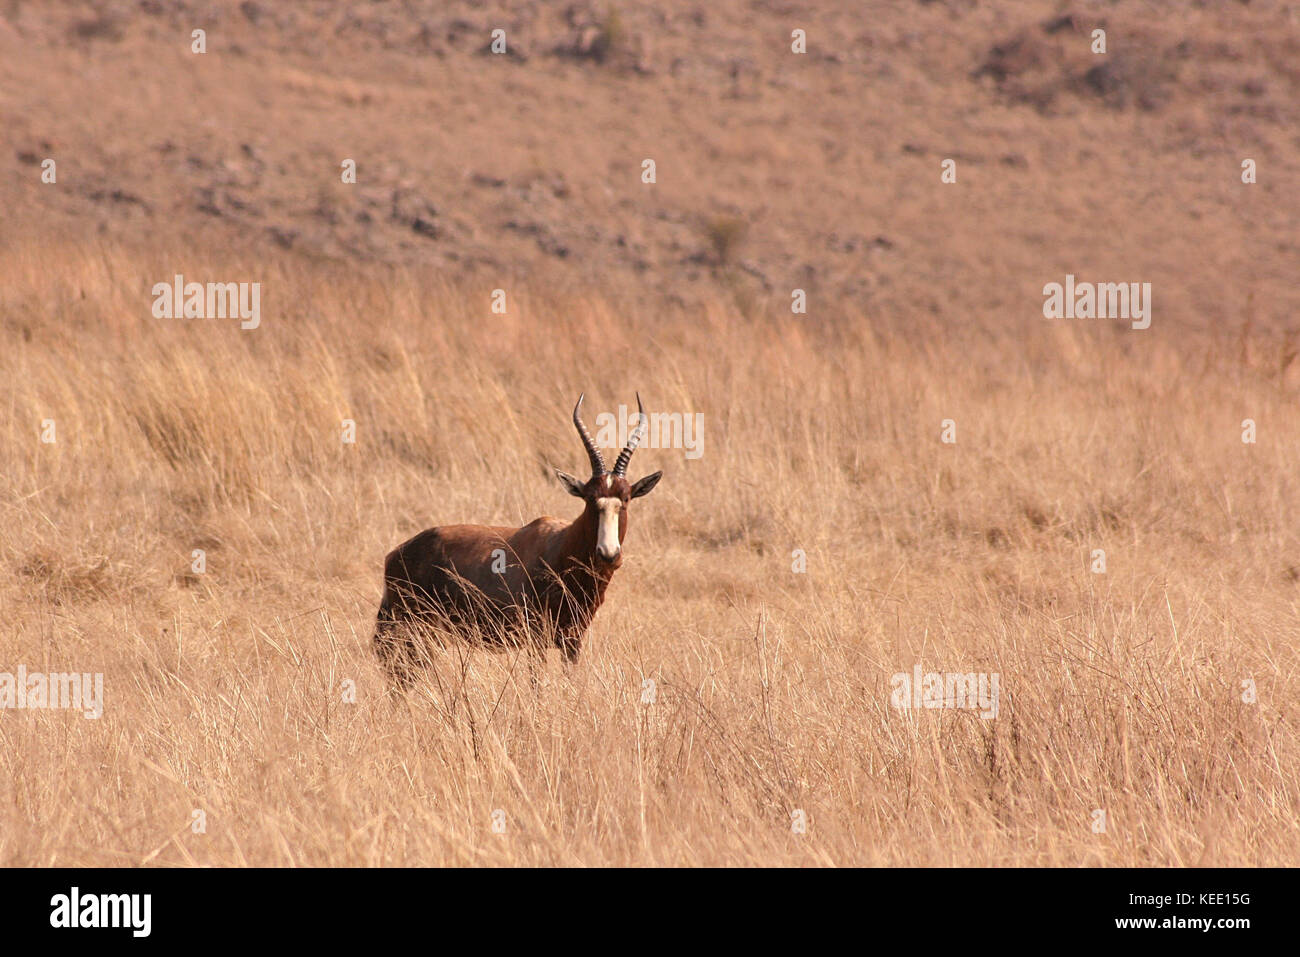 Blesbok Antelope standing in grassland in Gauteng Province, South Africa - Stock Image